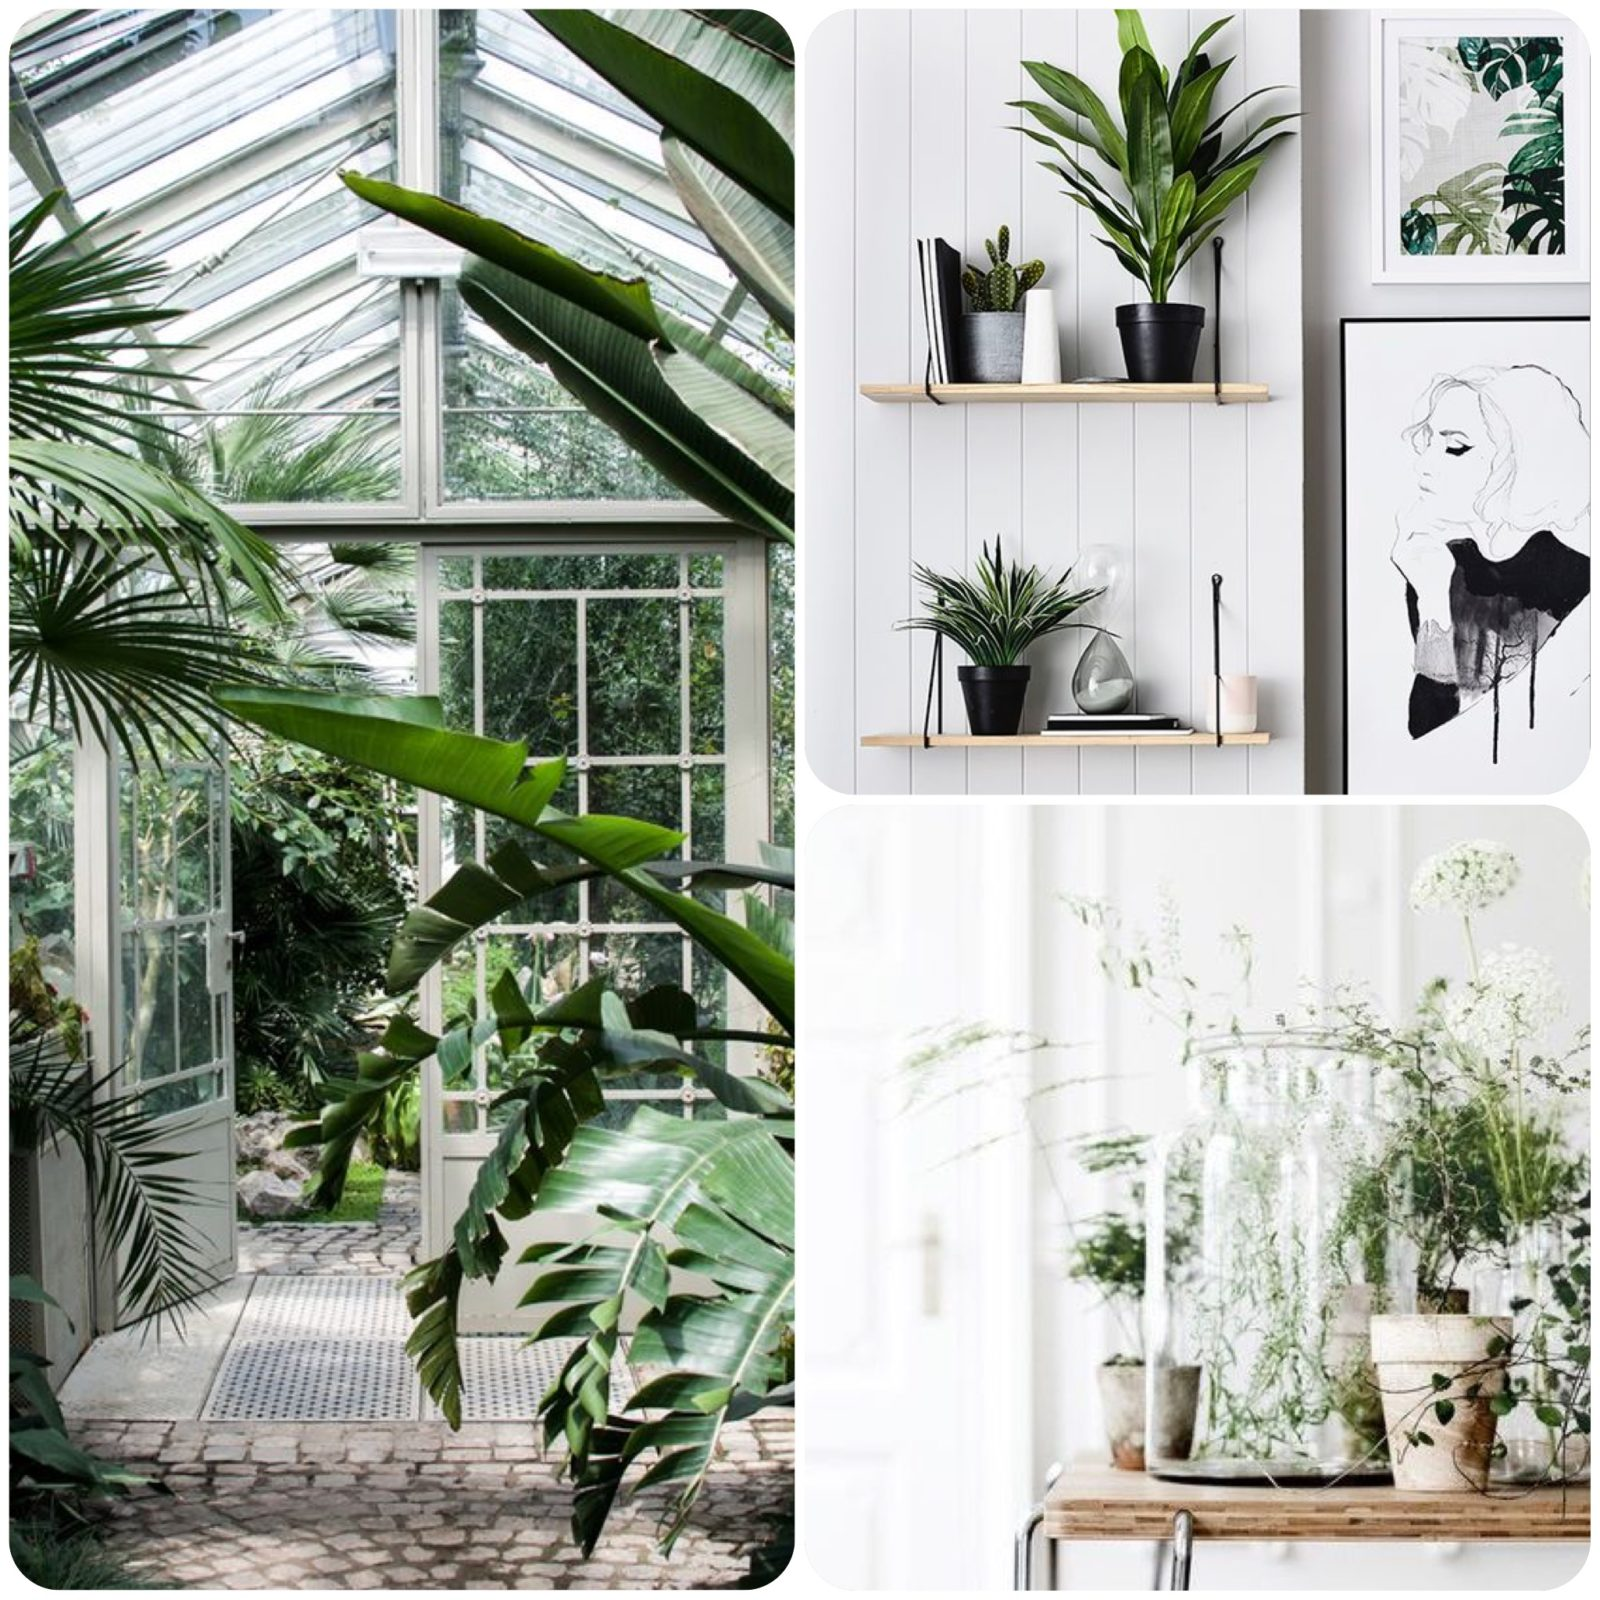 Home Decor Inspo – A Touch of Green